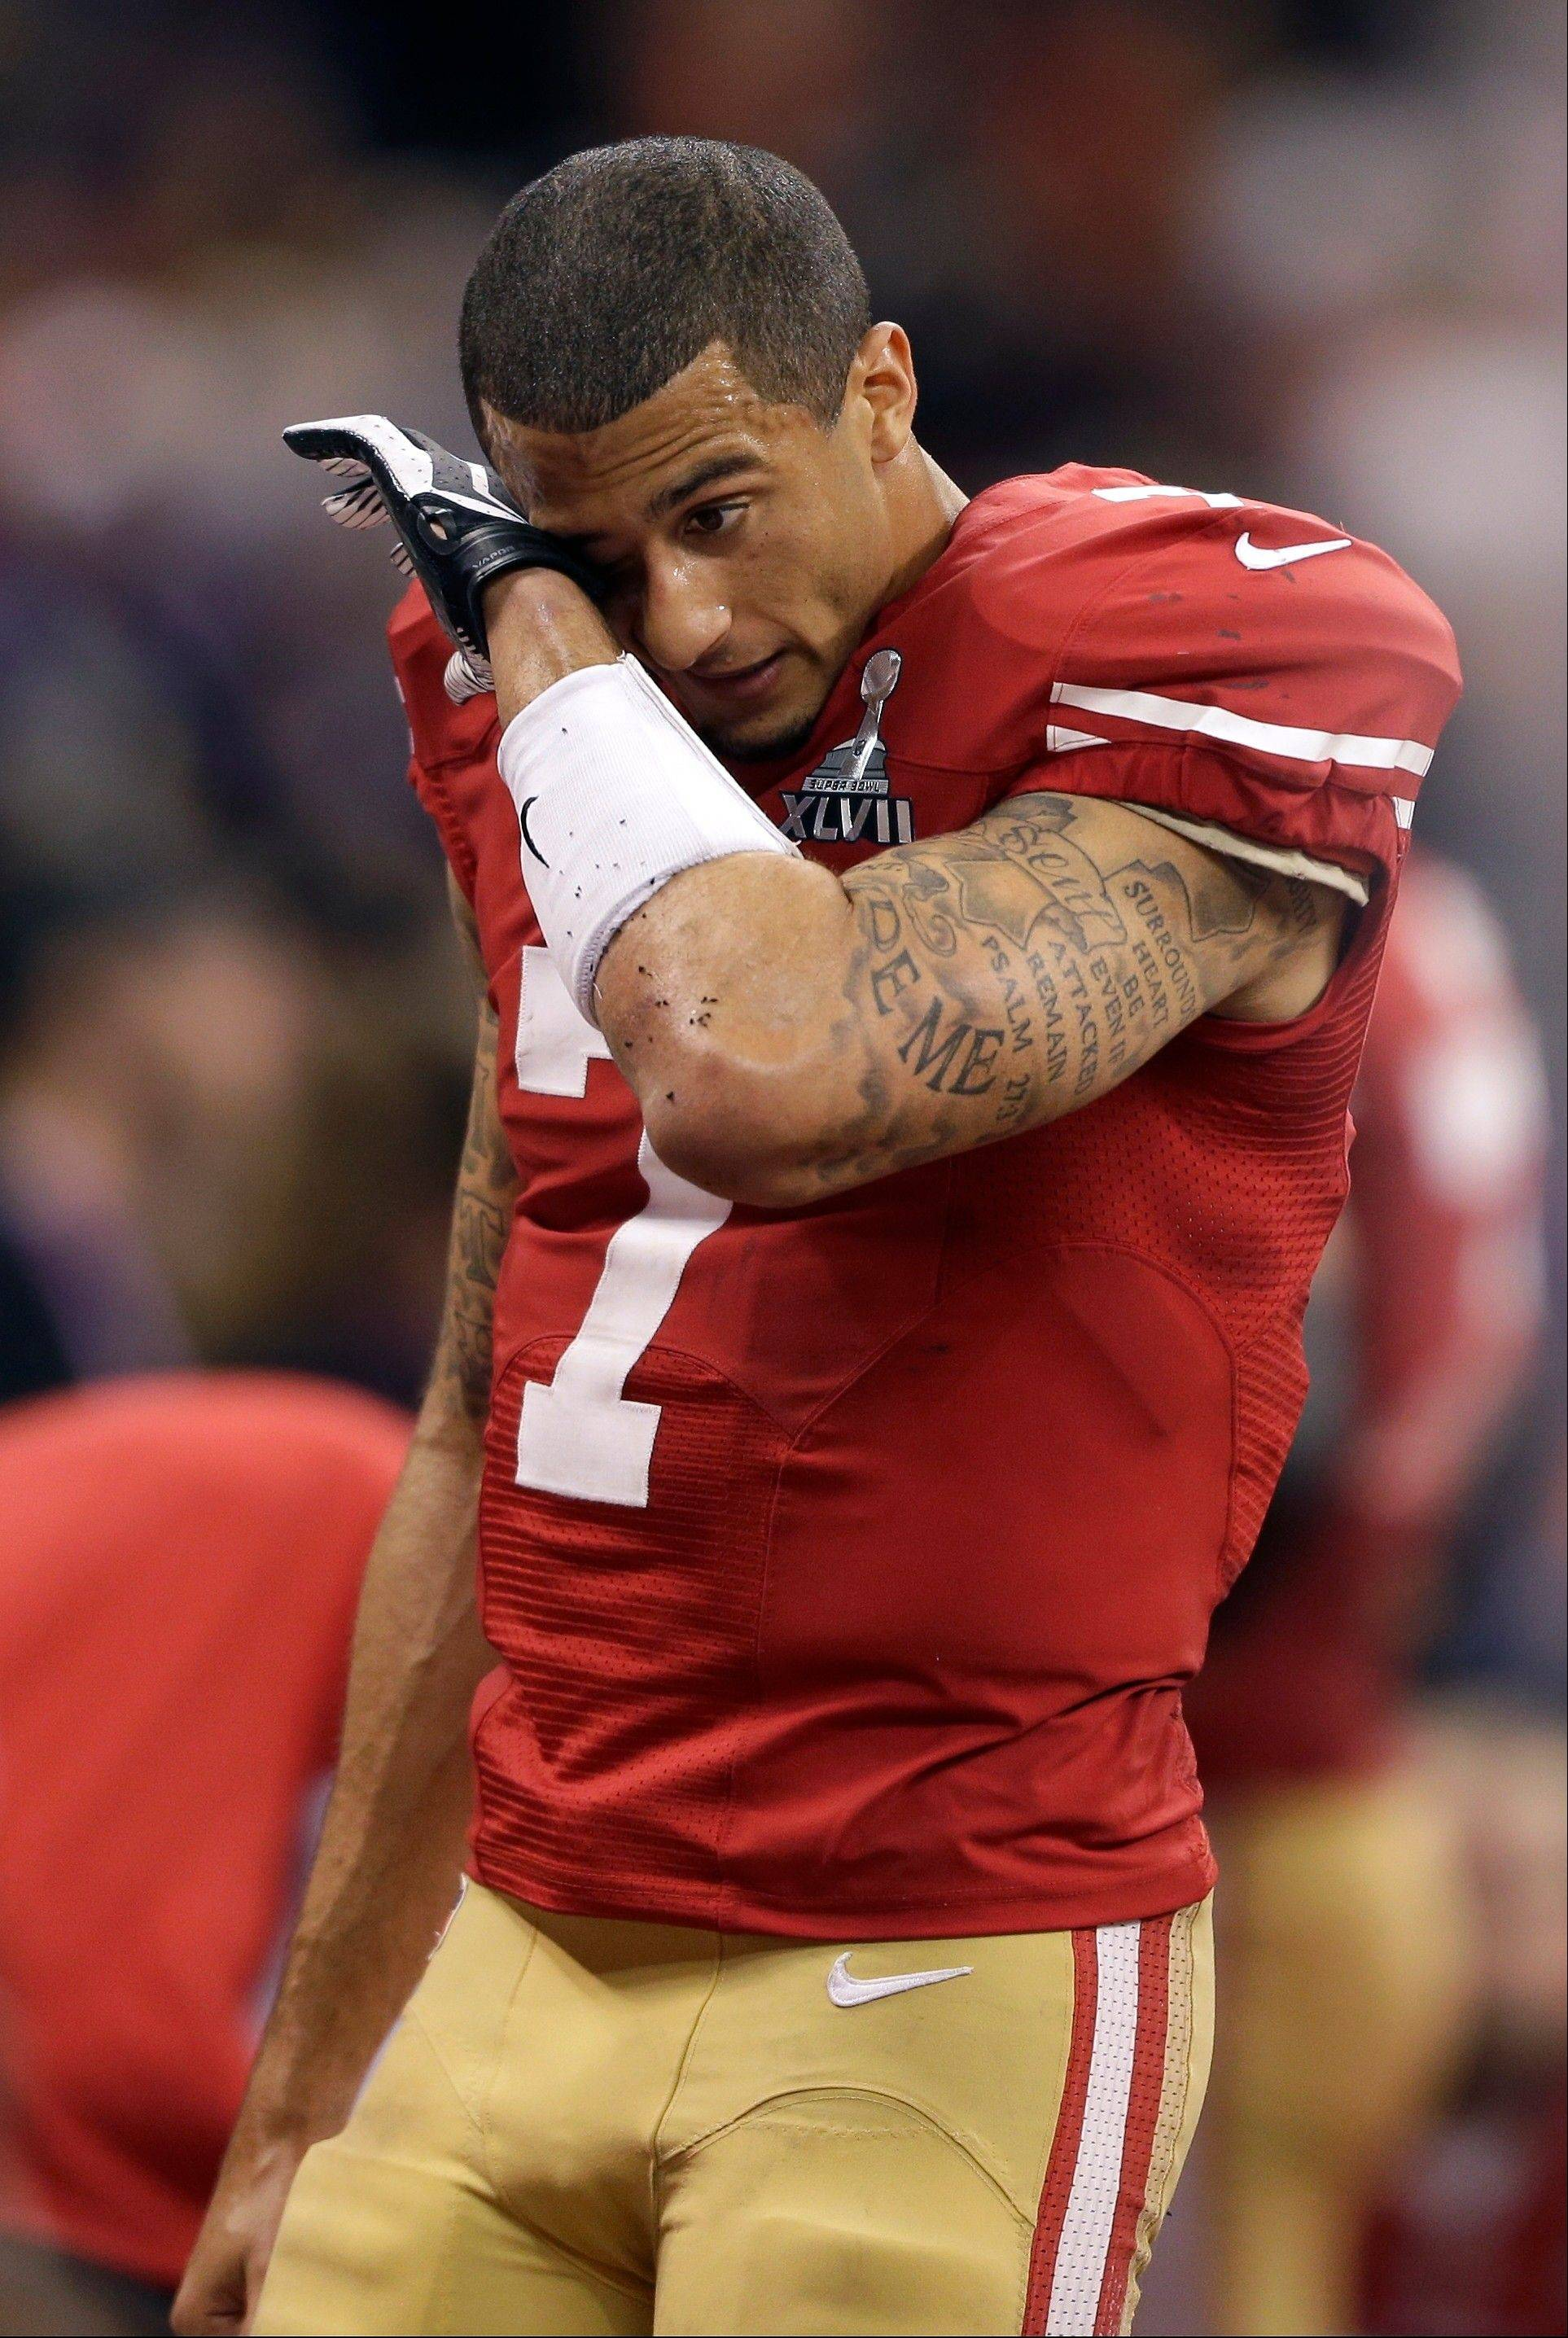 San Francisco 49ers quarterback Colin Kaepernick wipes his face after losing 34-31 to the Baltimore Ravens in the Super Bowl XLVII. Kaepernick finished 16 for 28 for 302 yards, threw one touchdown and ran for another.